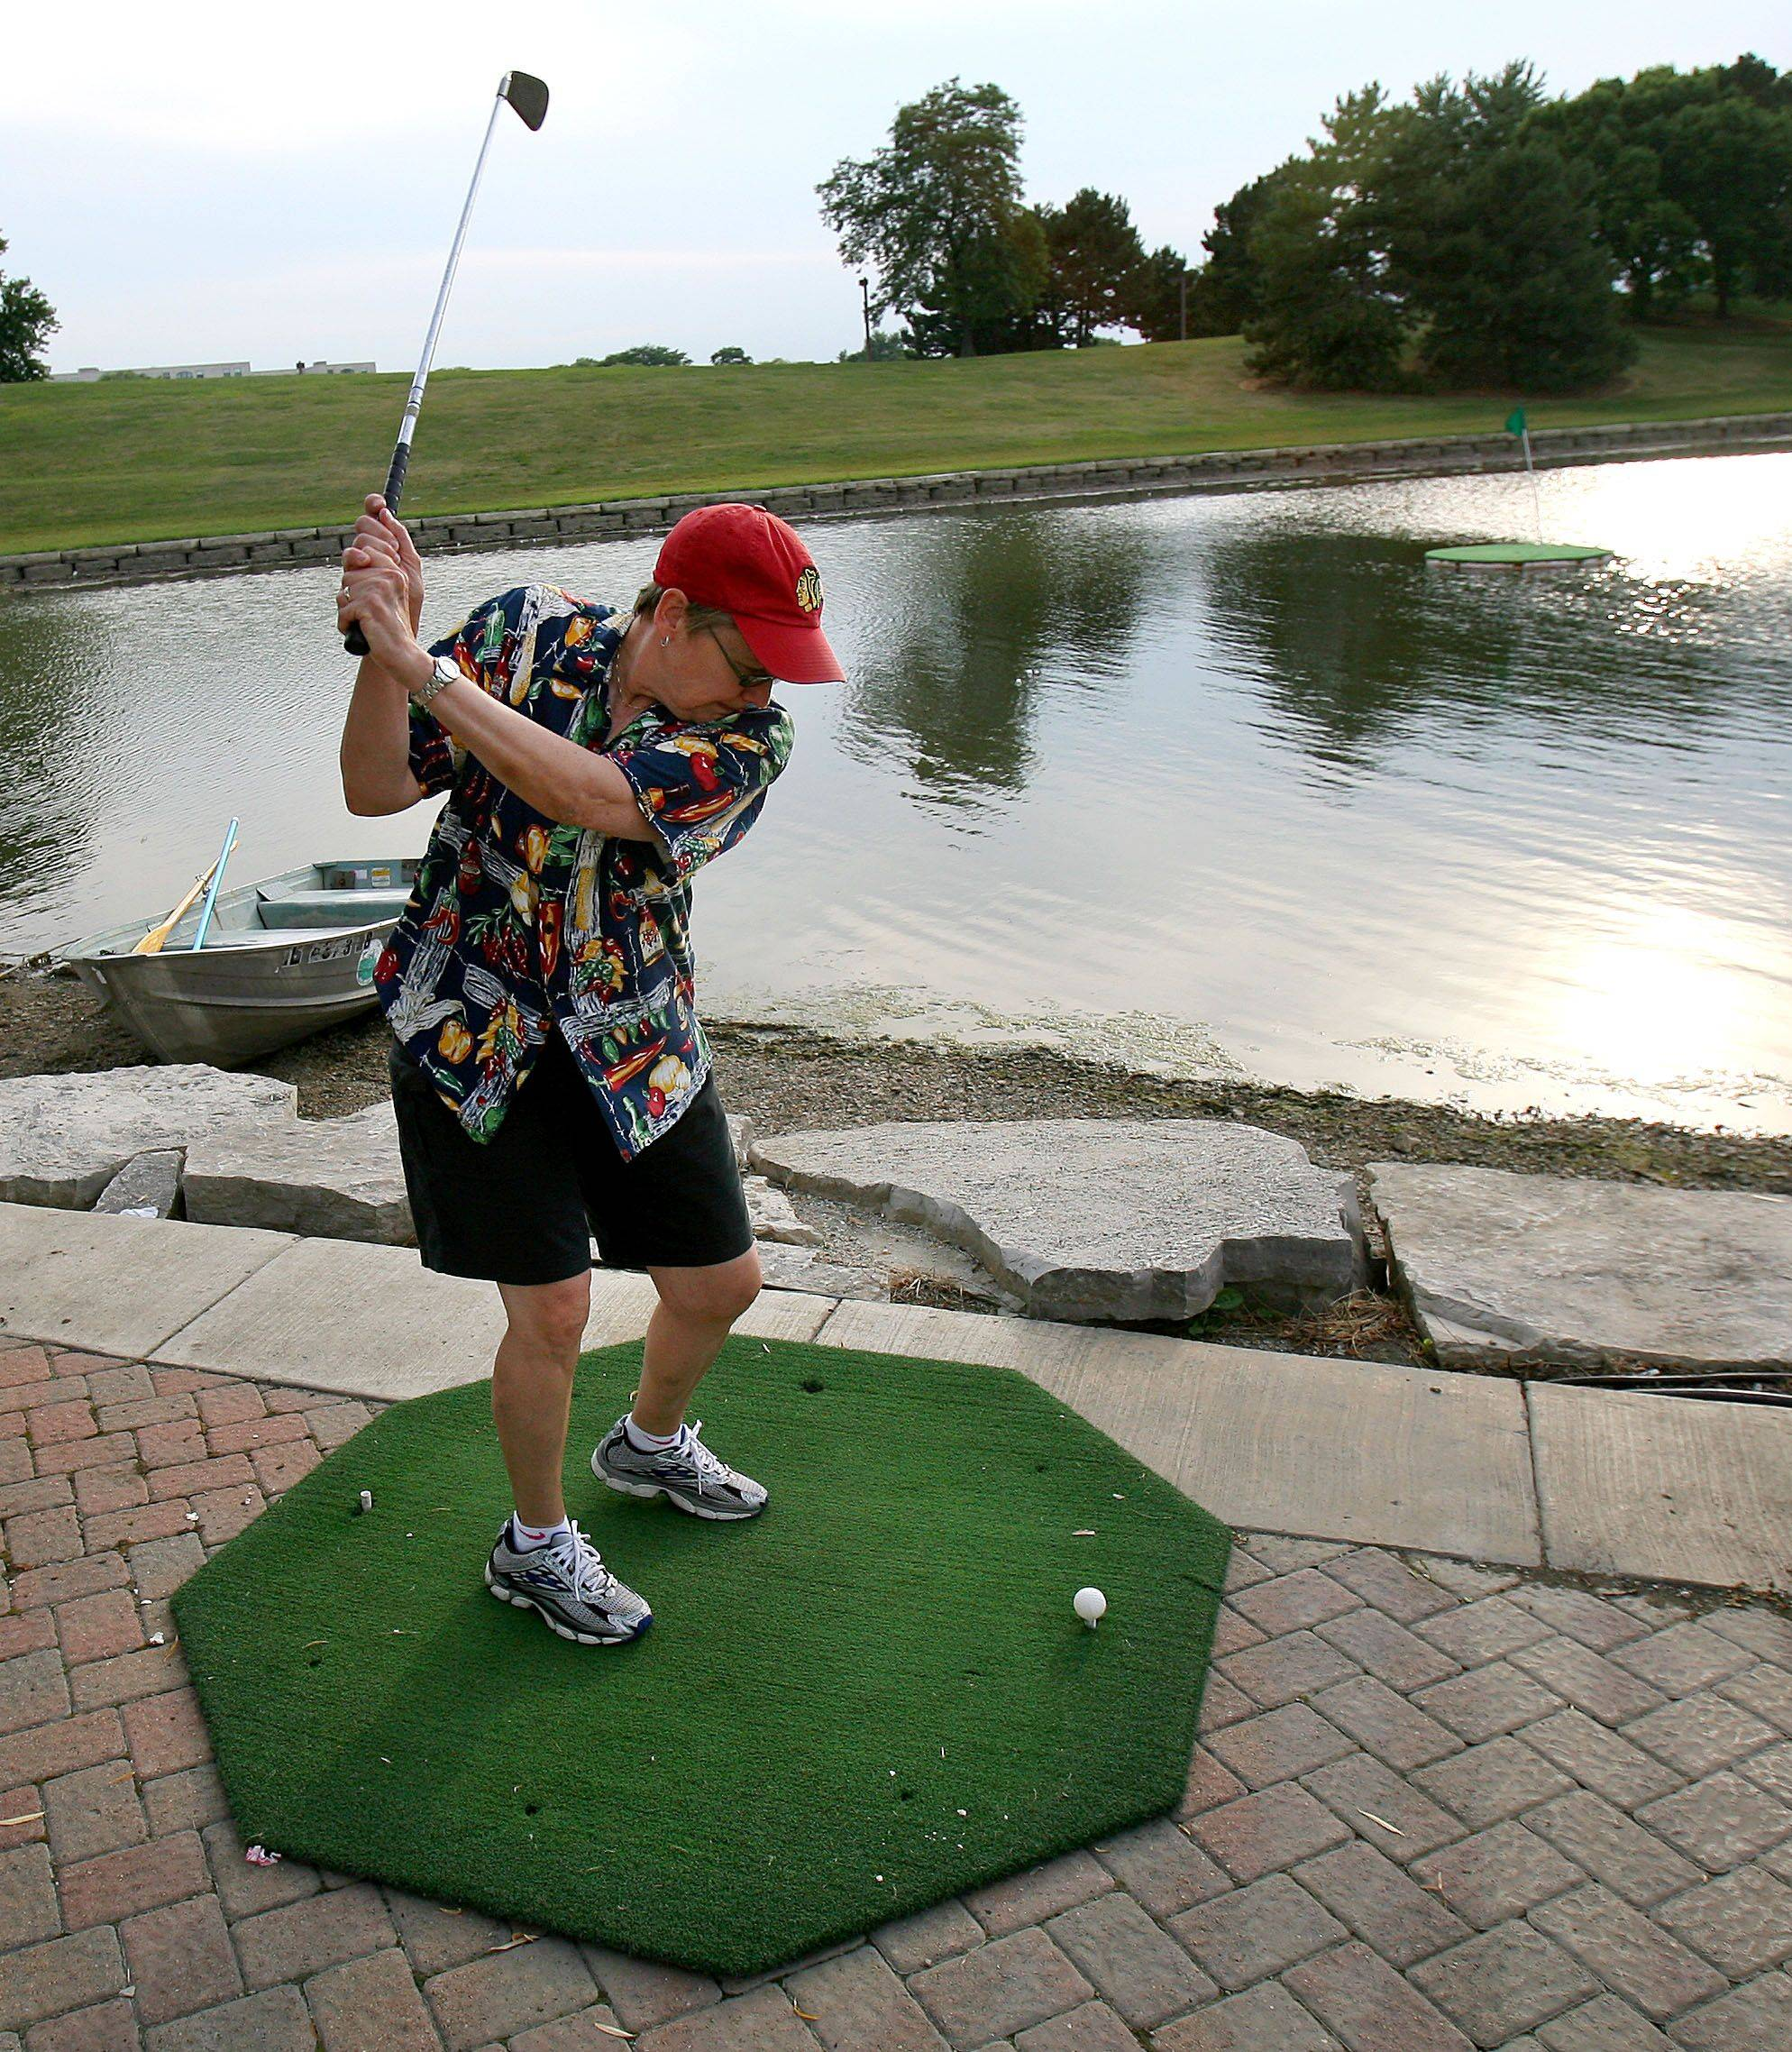 Paula Lipson of Vernon Hills tries her hand at a hole-in-one challenge Friday night at Vernon Hills' Summer Celebration at Century Park